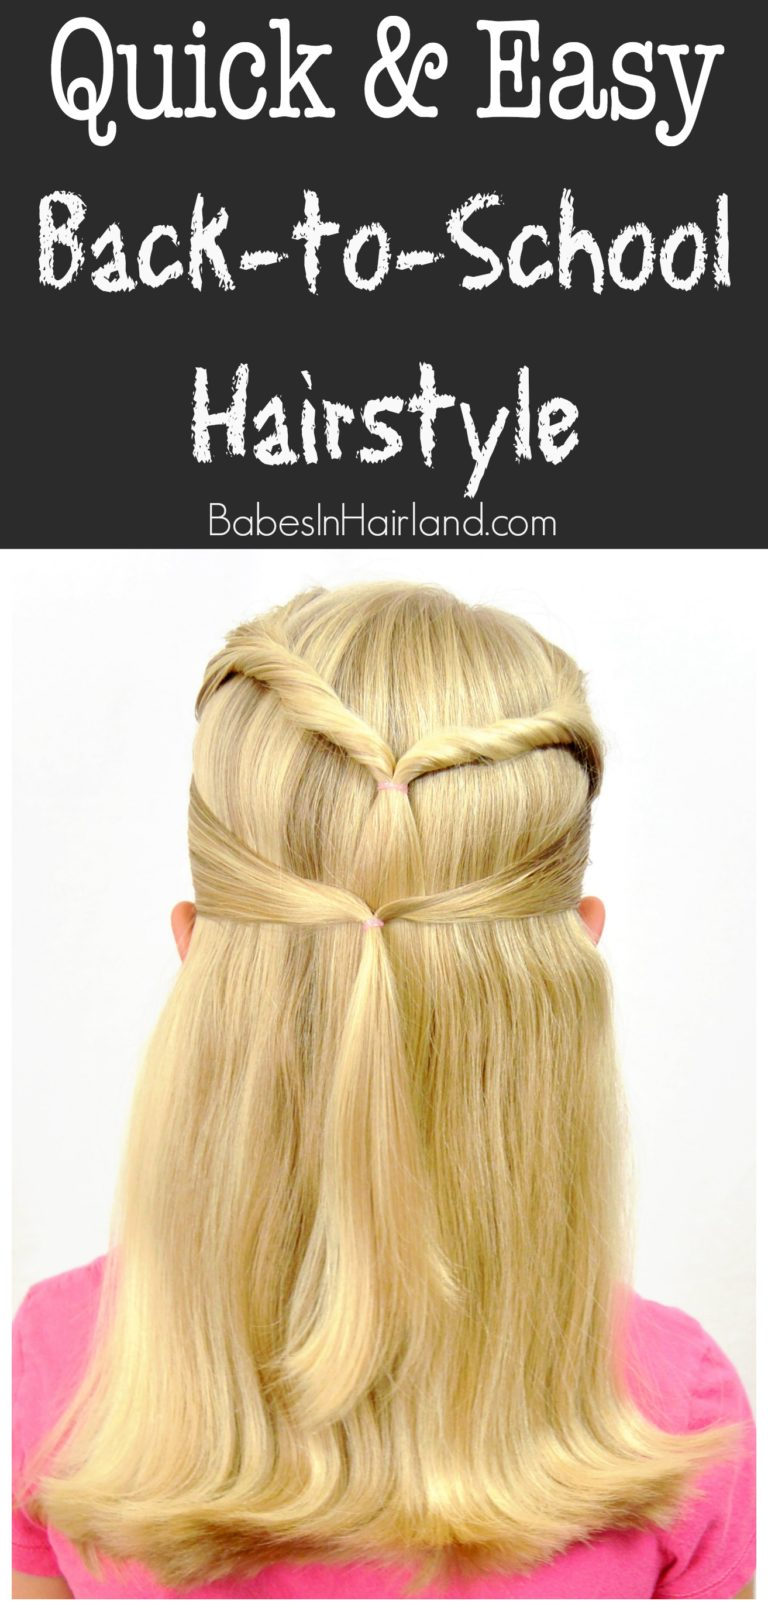 Quick Amp Easy Back To School Hairstyle Babes In Hairland